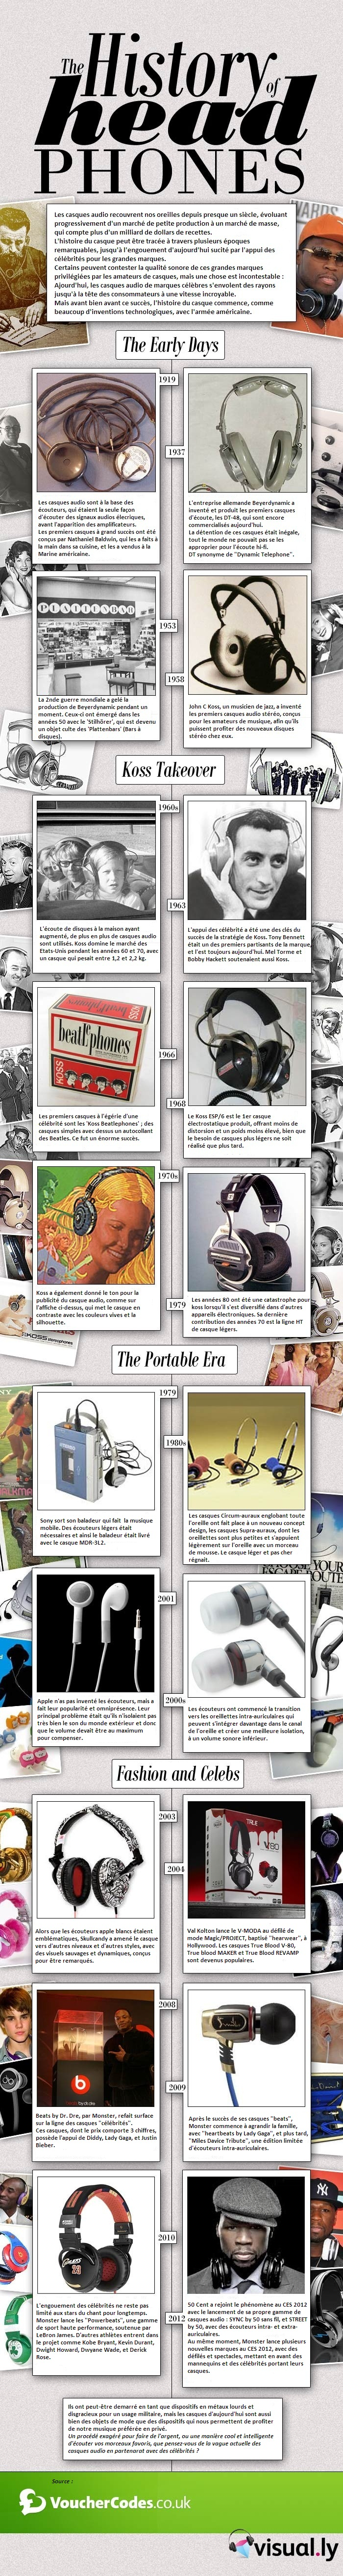 the-history-of-headphones